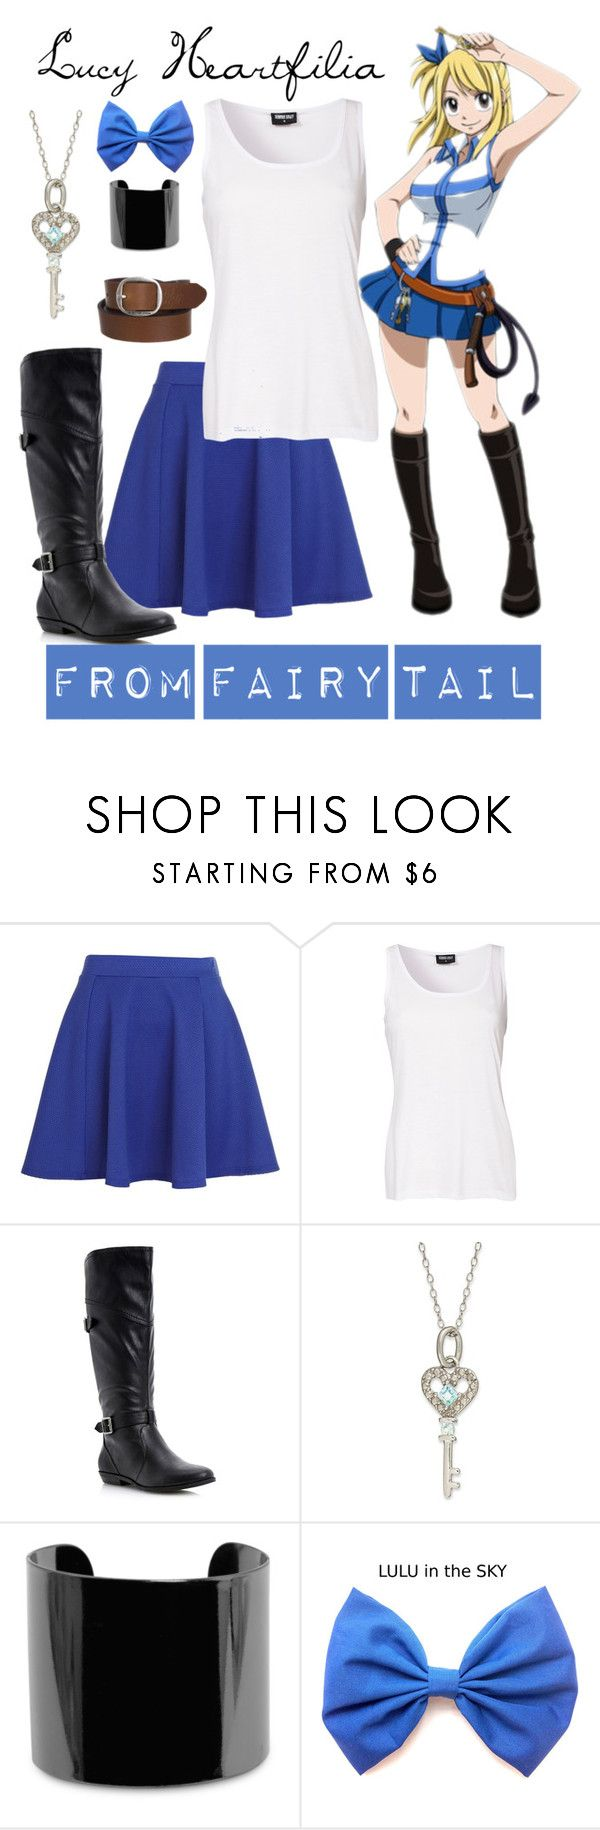 """[Fairy Tail] Lucy Heartfilia"" by khalsei ❤ liked on Polyvore featuring River Island, Sally&Circle, Head Over Heels by Dune, Victoria Townsend, MANGO and G-Star Raw"